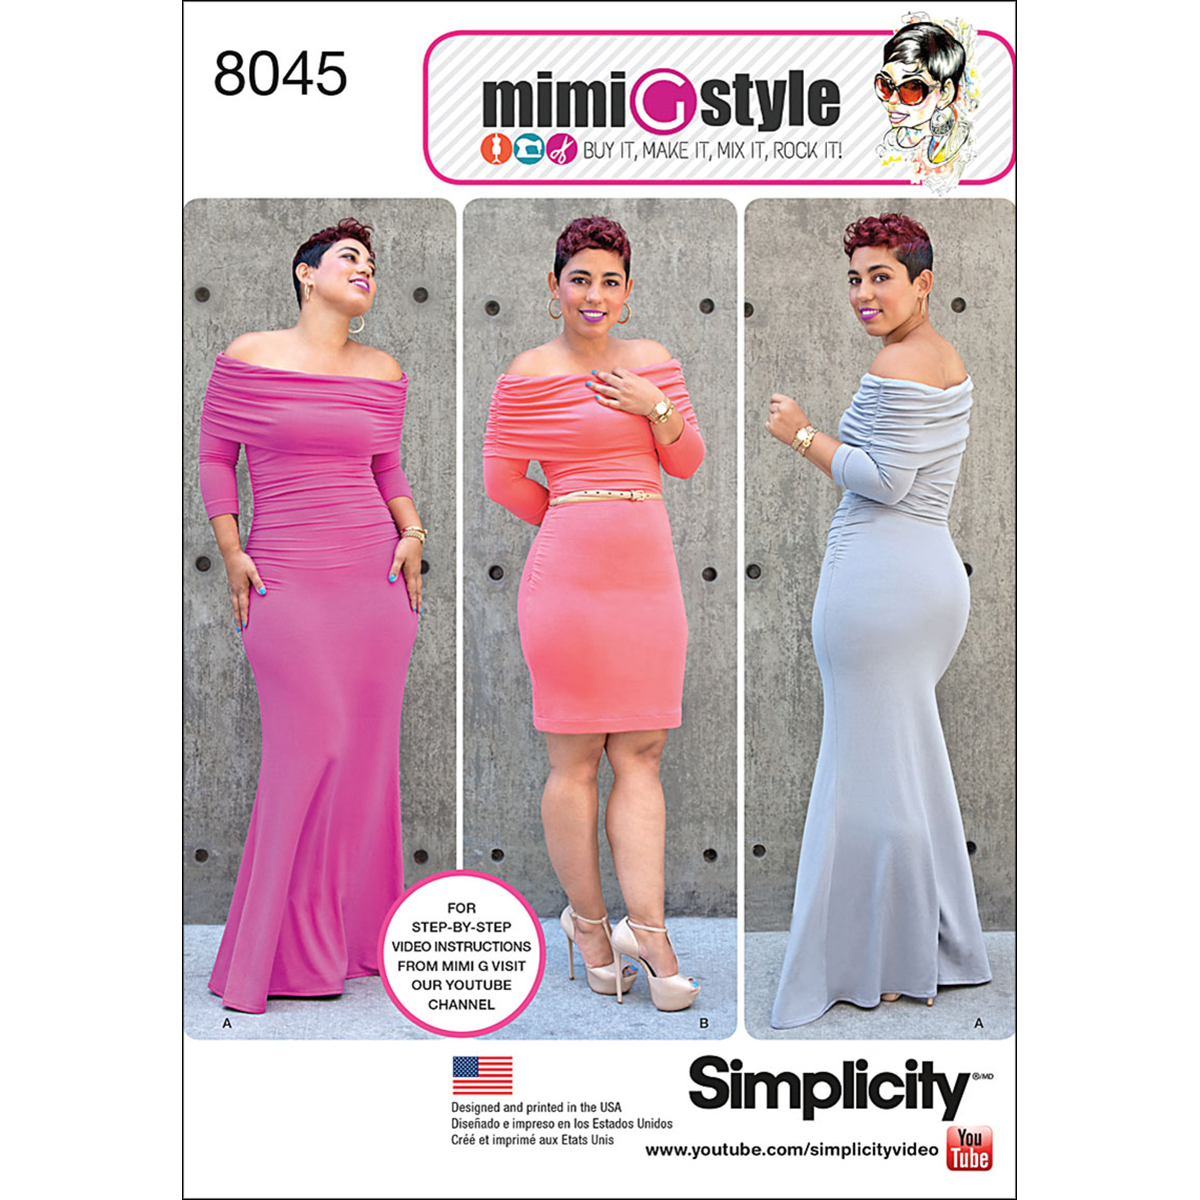 Simplicity Misses' Size 10-18 Mimi G Style Knit Dress Pattern, 1 Each